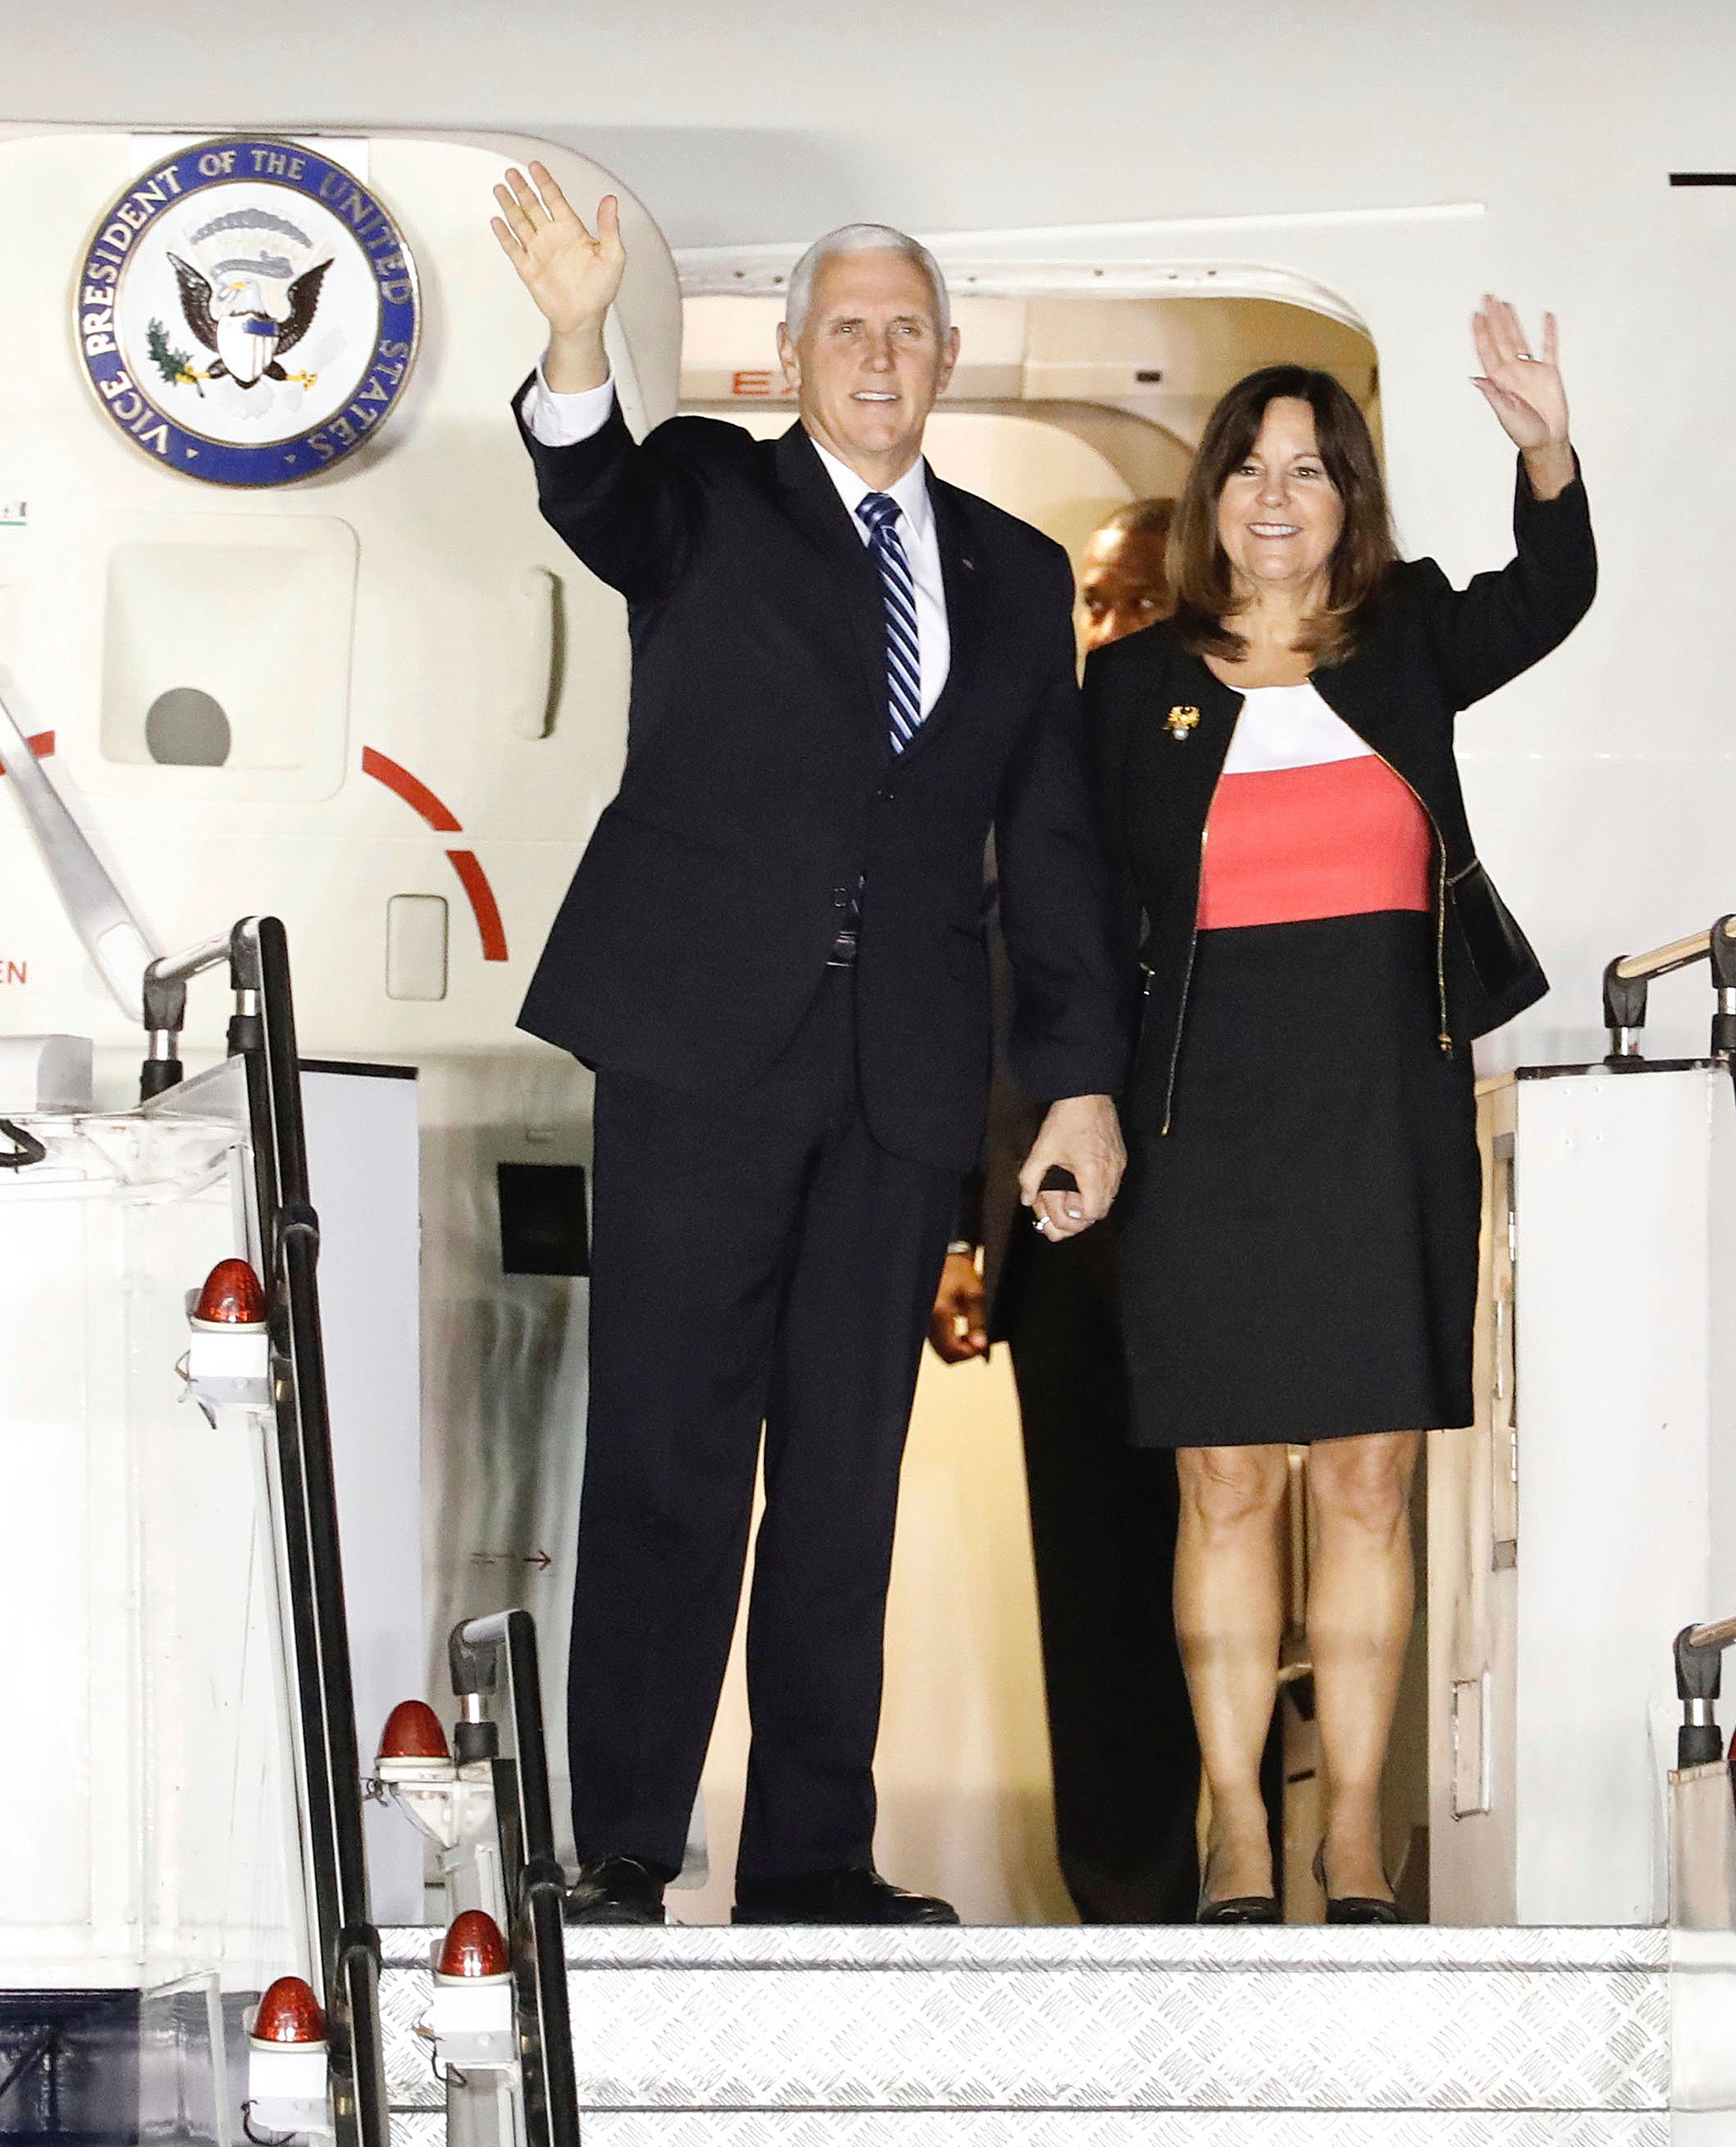 U.S. Vice President Mike Pence and his wife Karen wave during their arrival at Paya Lebar Airbase in Singapore, Tuesday, Nov. 13, 2018. Pence is in Singapore to attend the 33rd ASEAN summit. (AP Photo/Bernat Armangue)